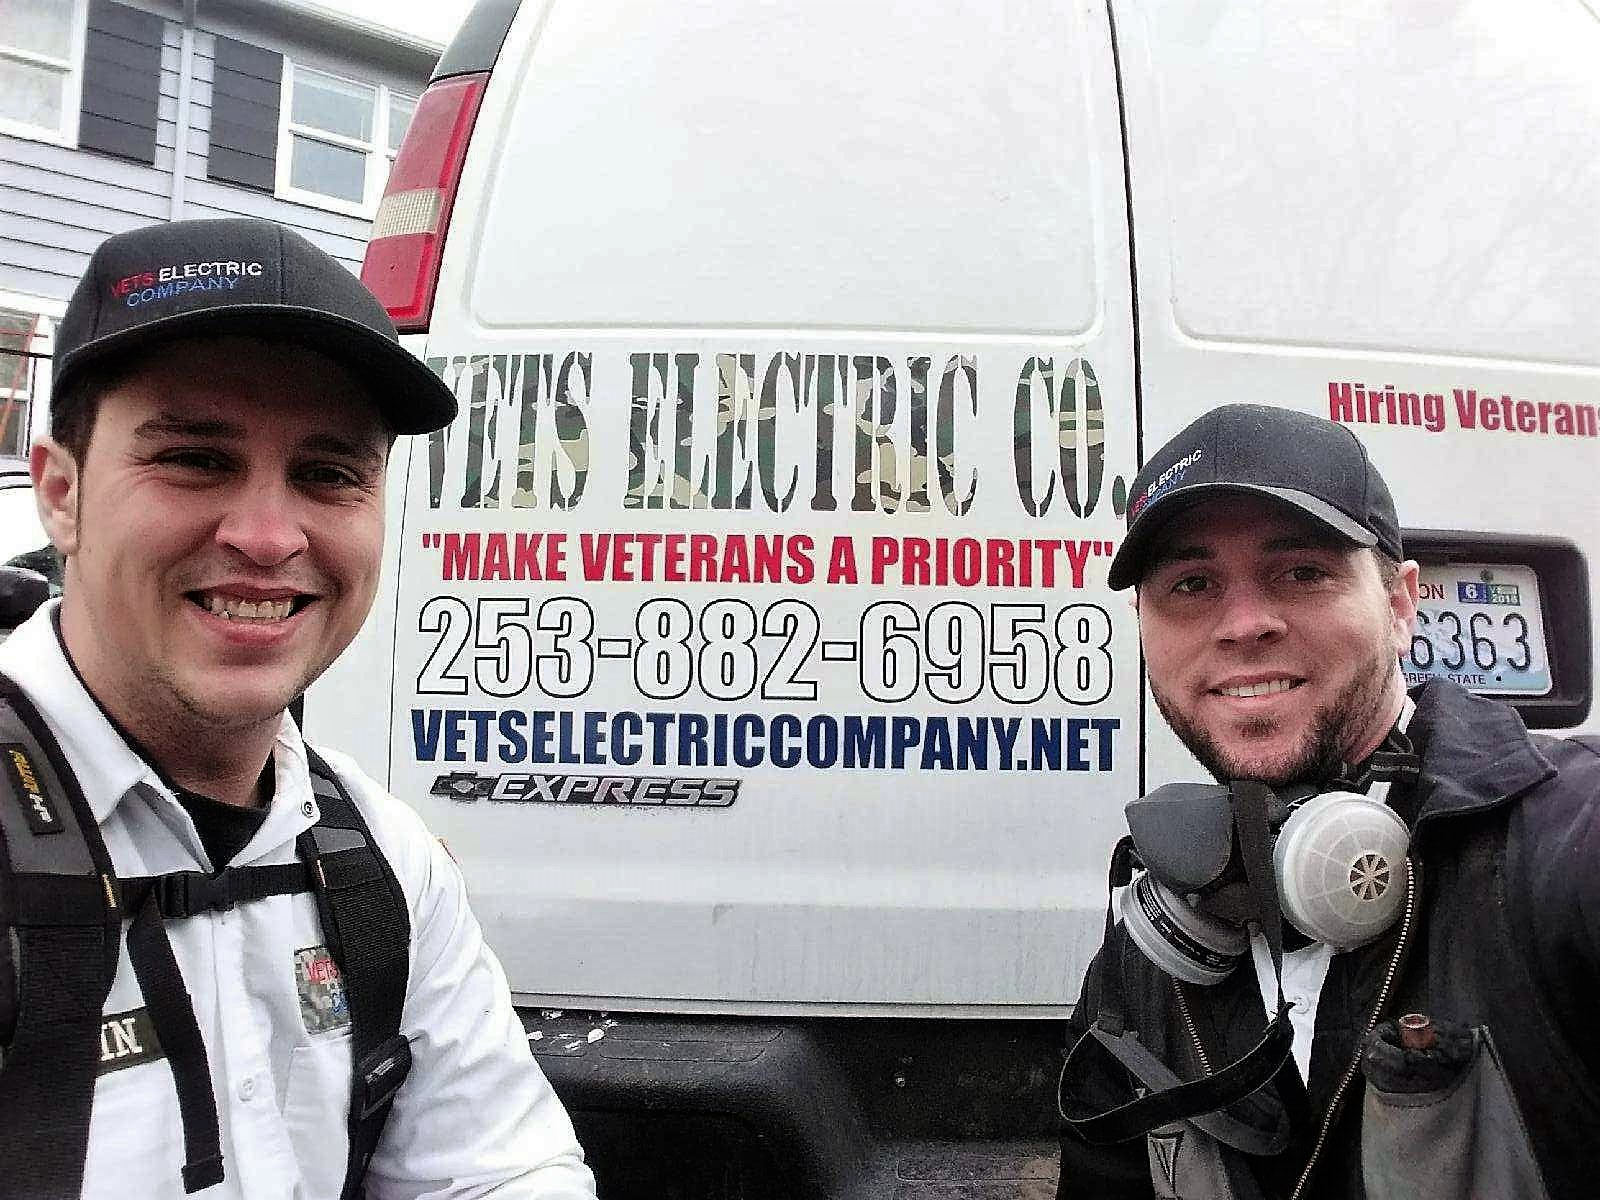 Vets Electric Company image 1